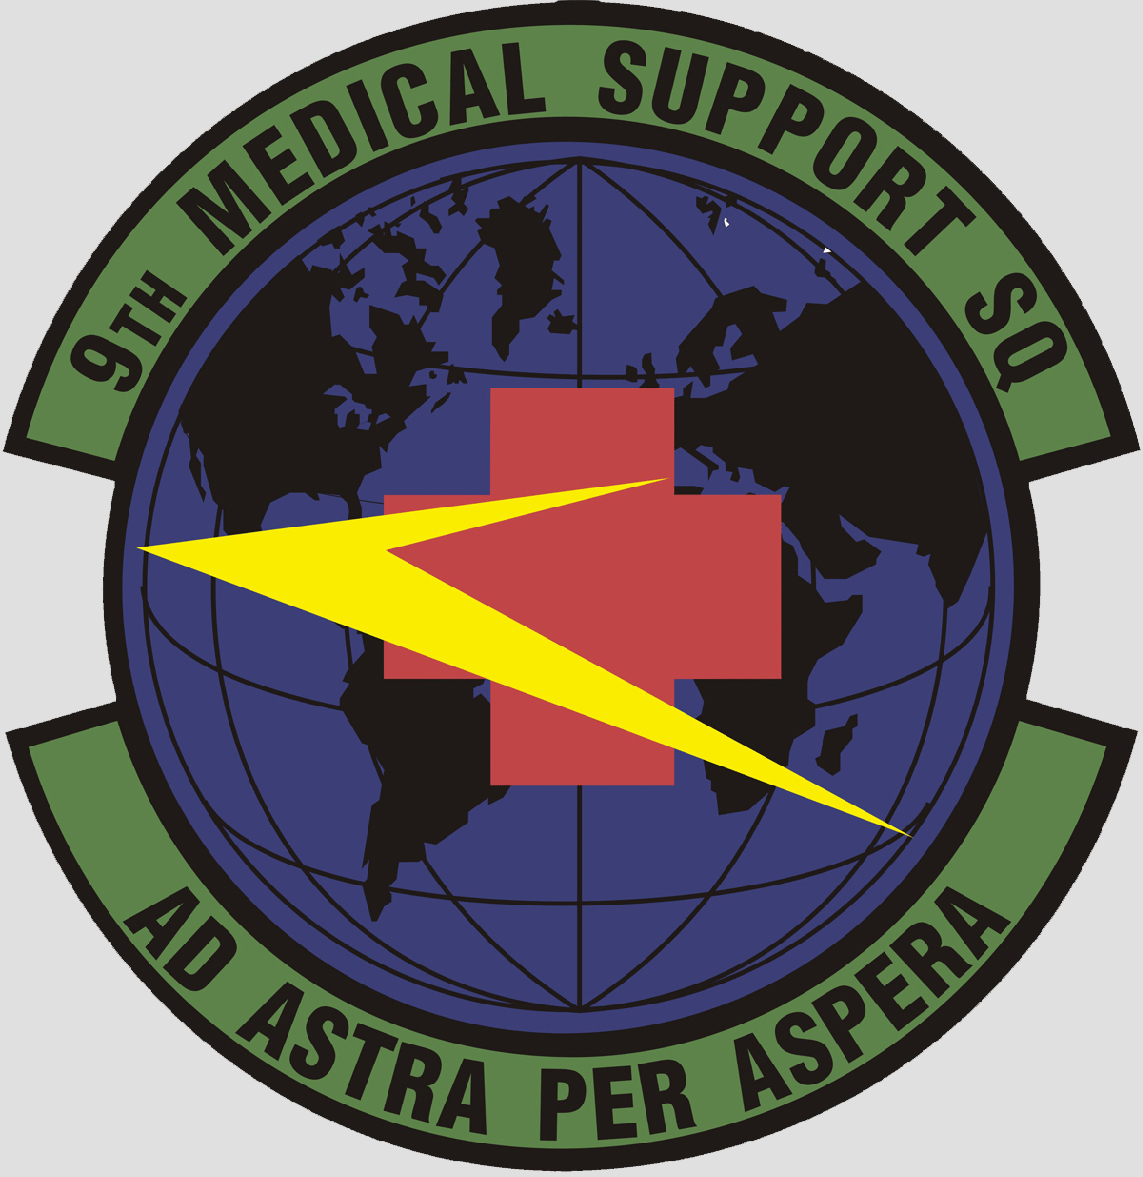 9th Medical Support Squadron